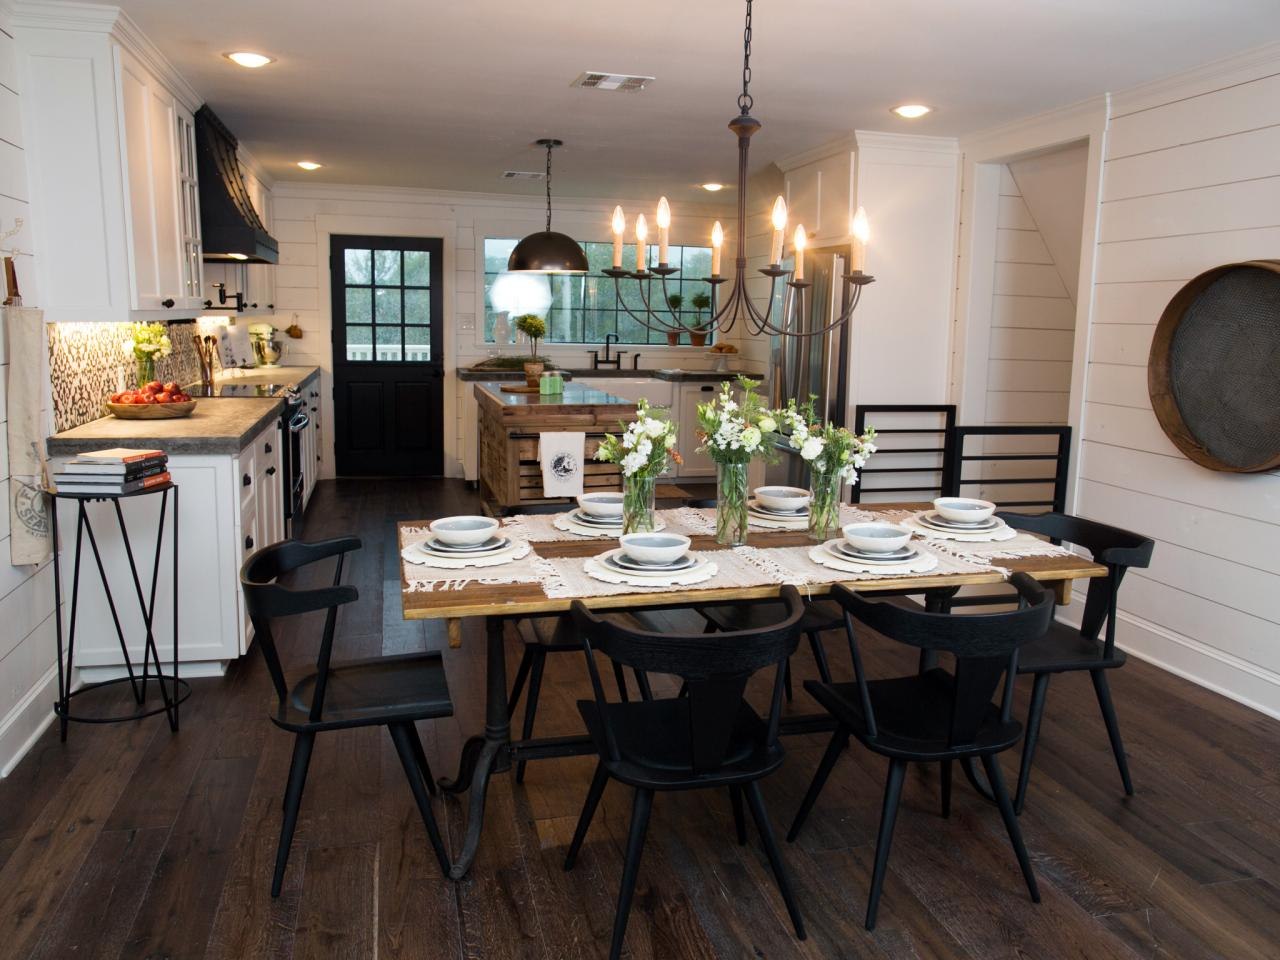 Chip and joanna gaines transform a barn into a rustic home for Kitchen dining hall design